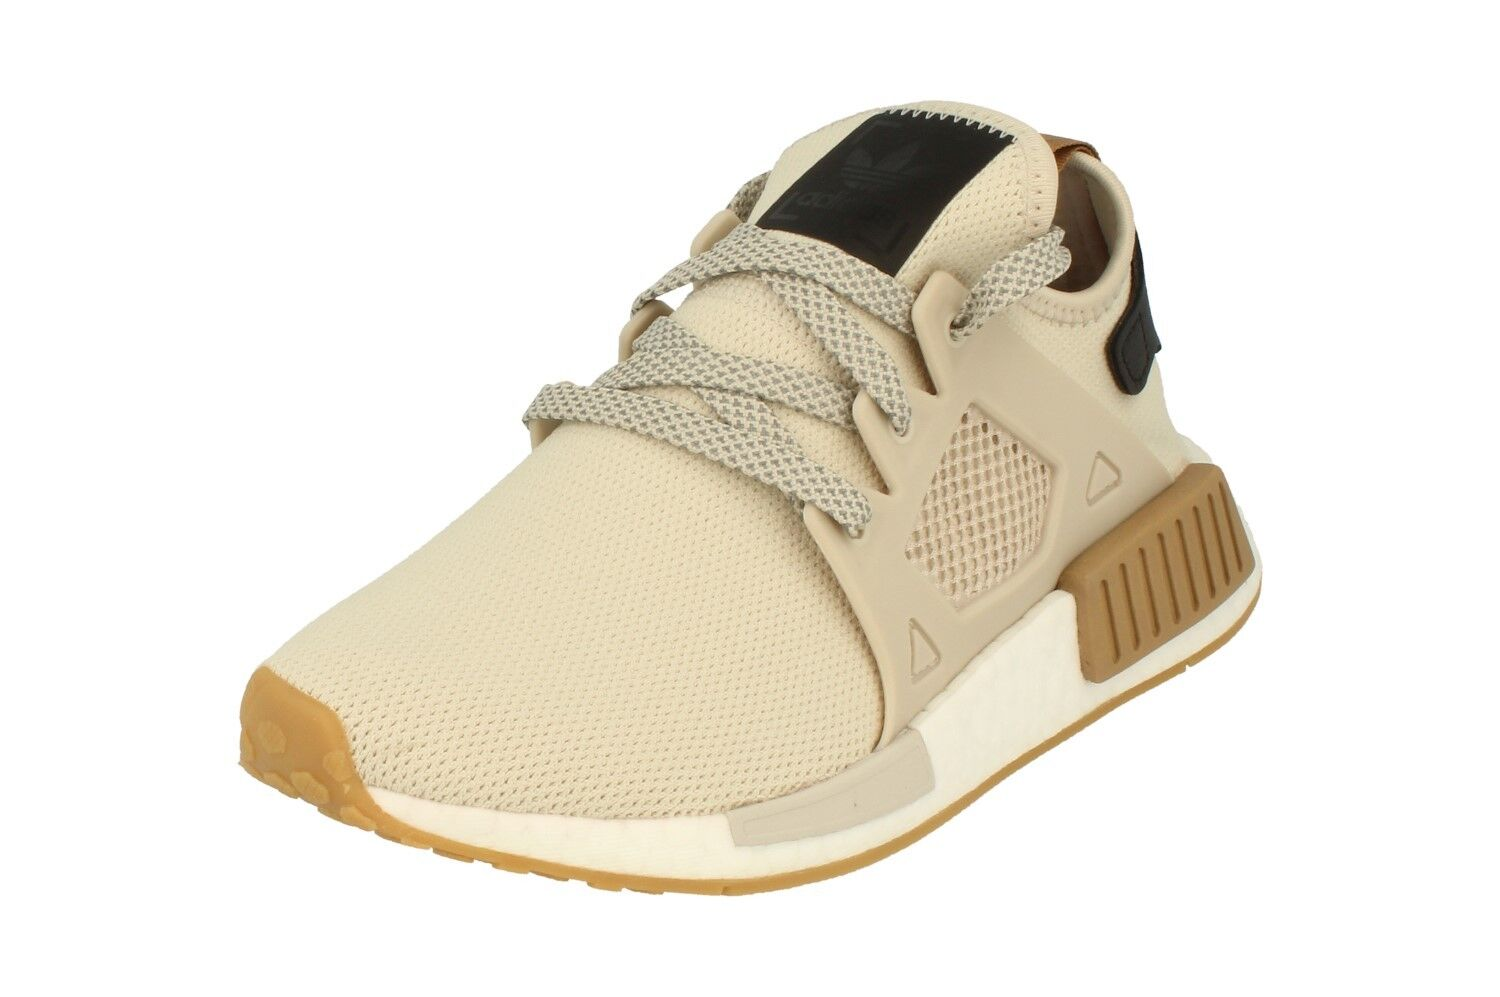 Adidas Originals Nmd_Xr1 Mens Running Trainers DA9526 Sneakers shoes